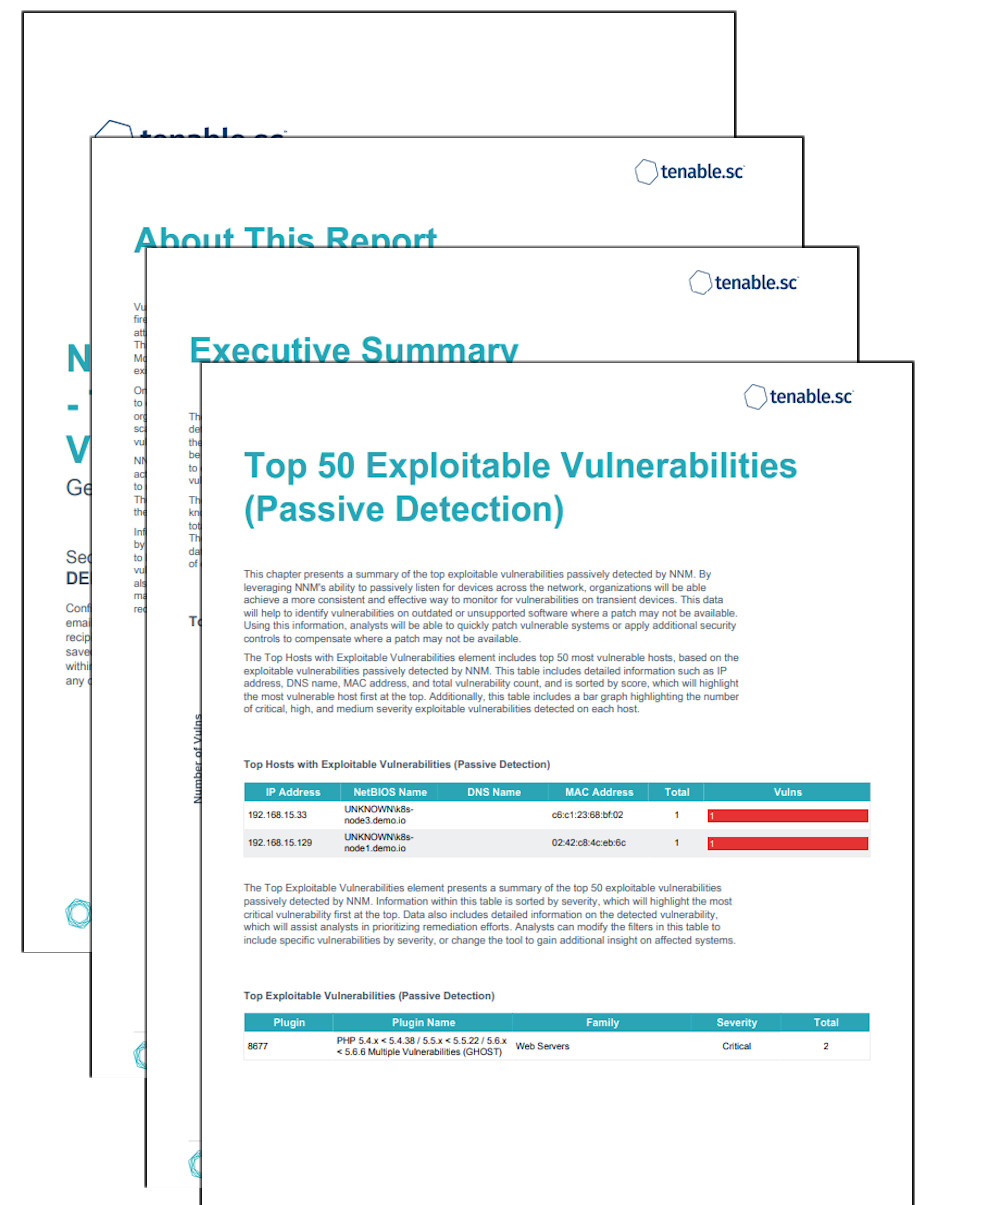 NNM Detections Report - Top 50 Exploitable Vulnerabilities